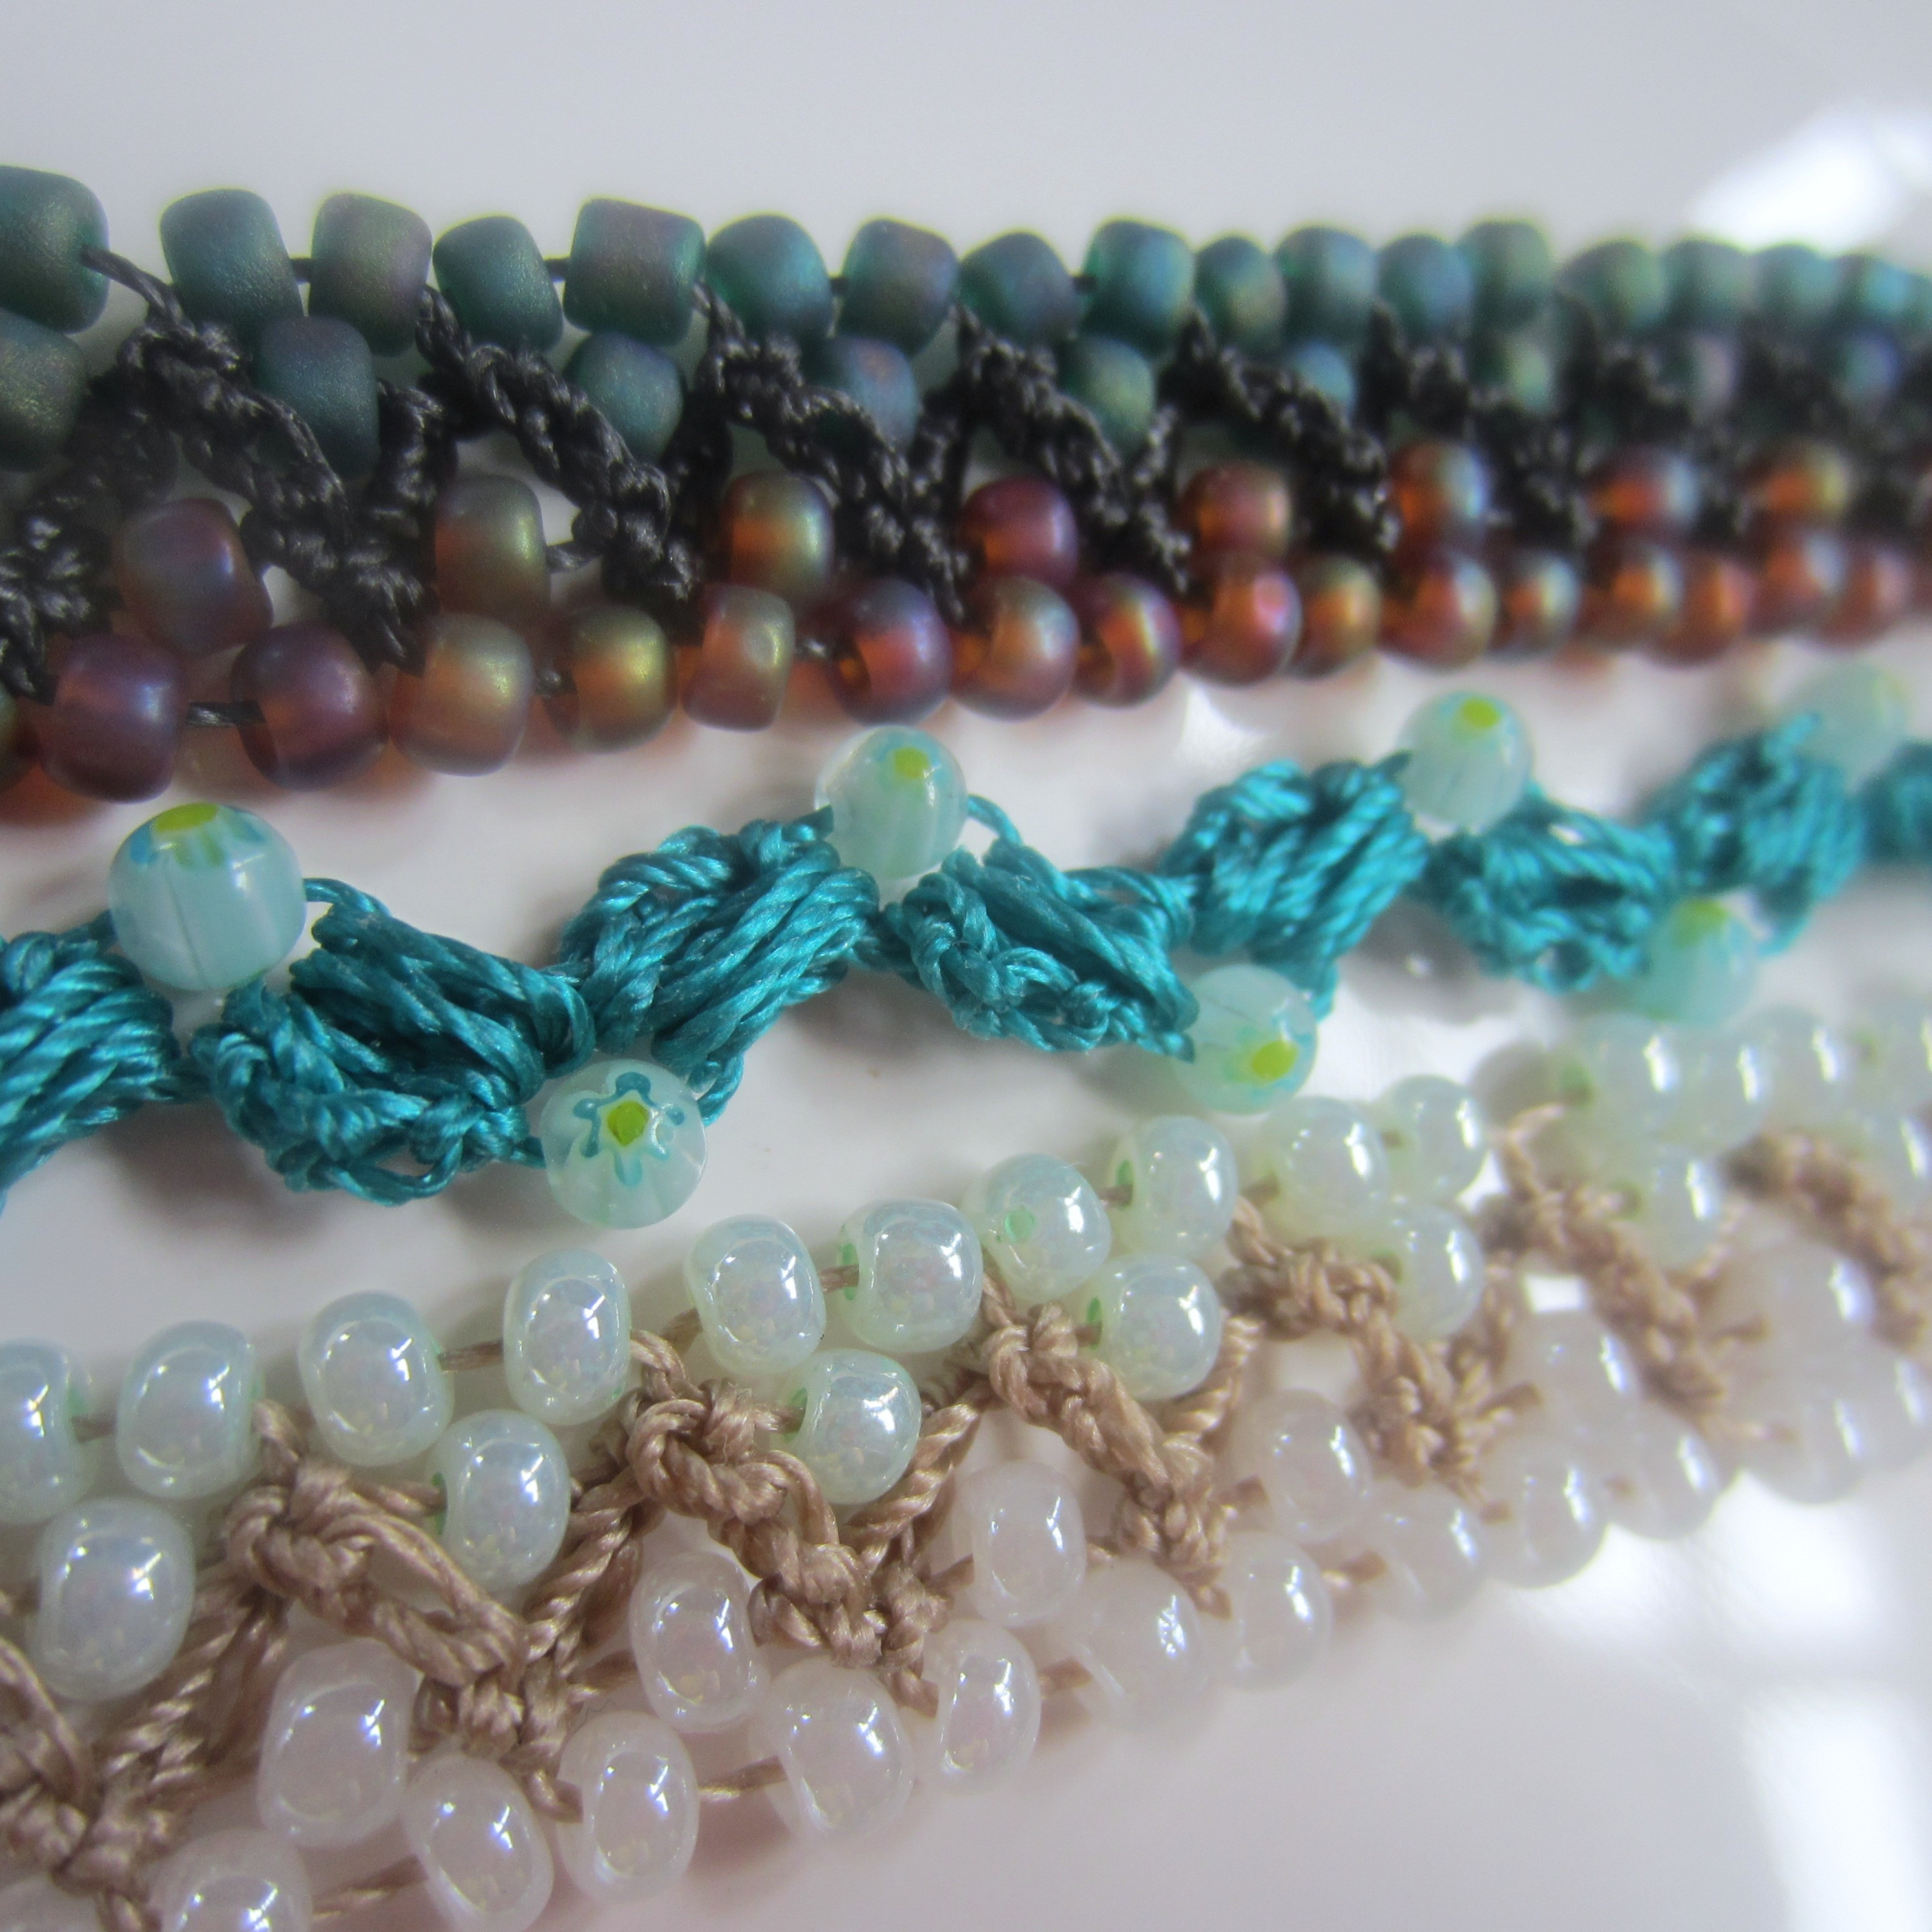 Crochet with Beads Inspirational Crochet Beads Bracelets 011 Of Amazing 50 Models Crochet with Beads